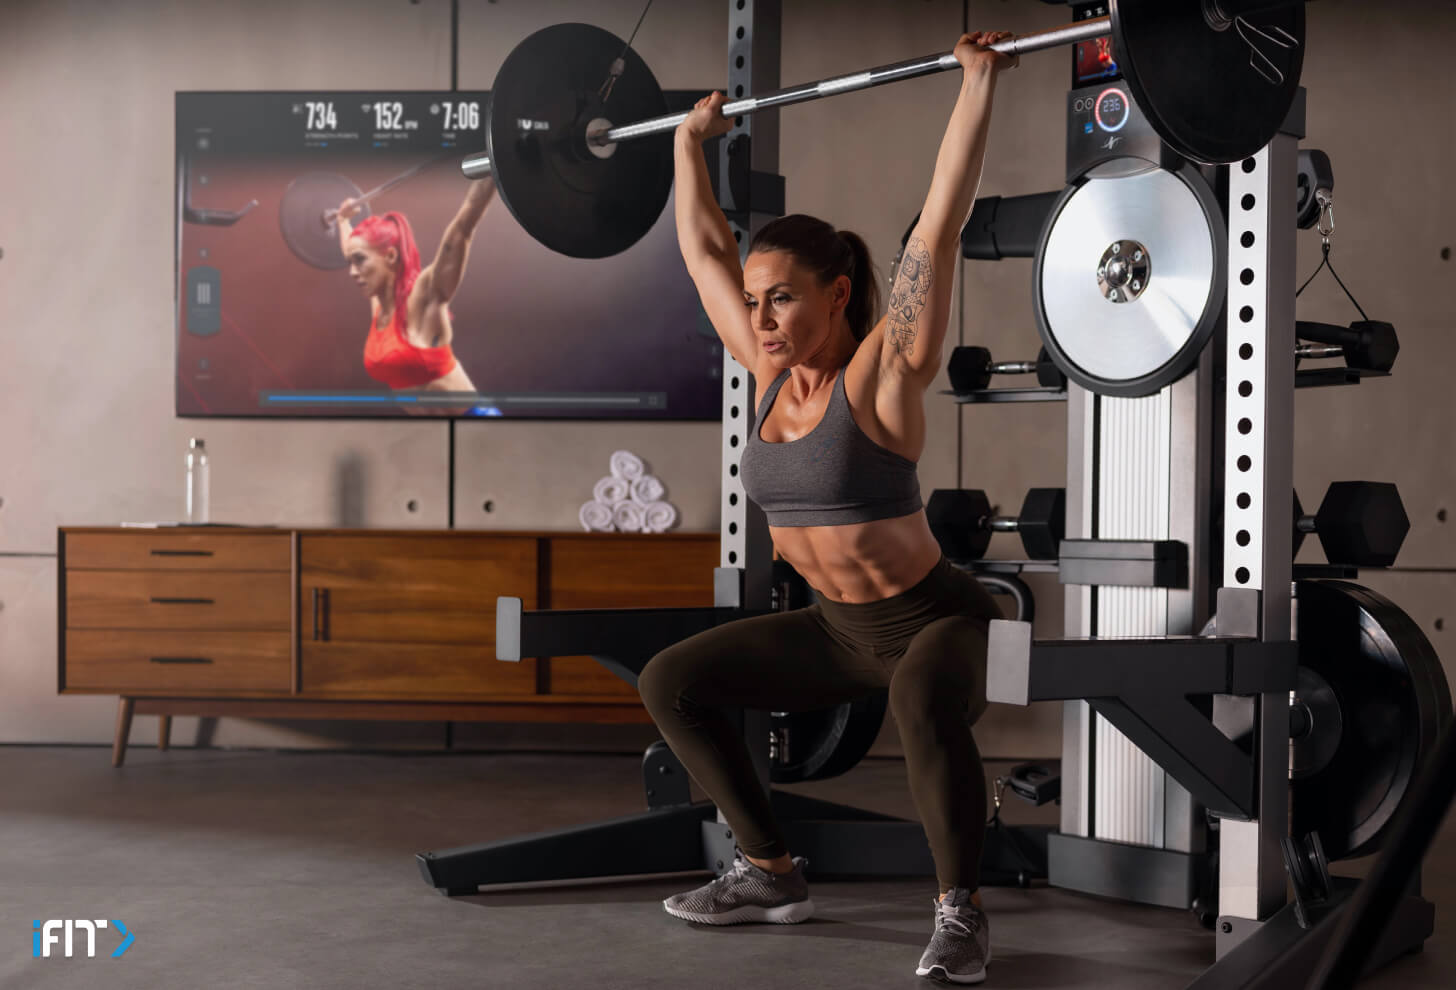 Woman completes an iFIT weight lifting workout